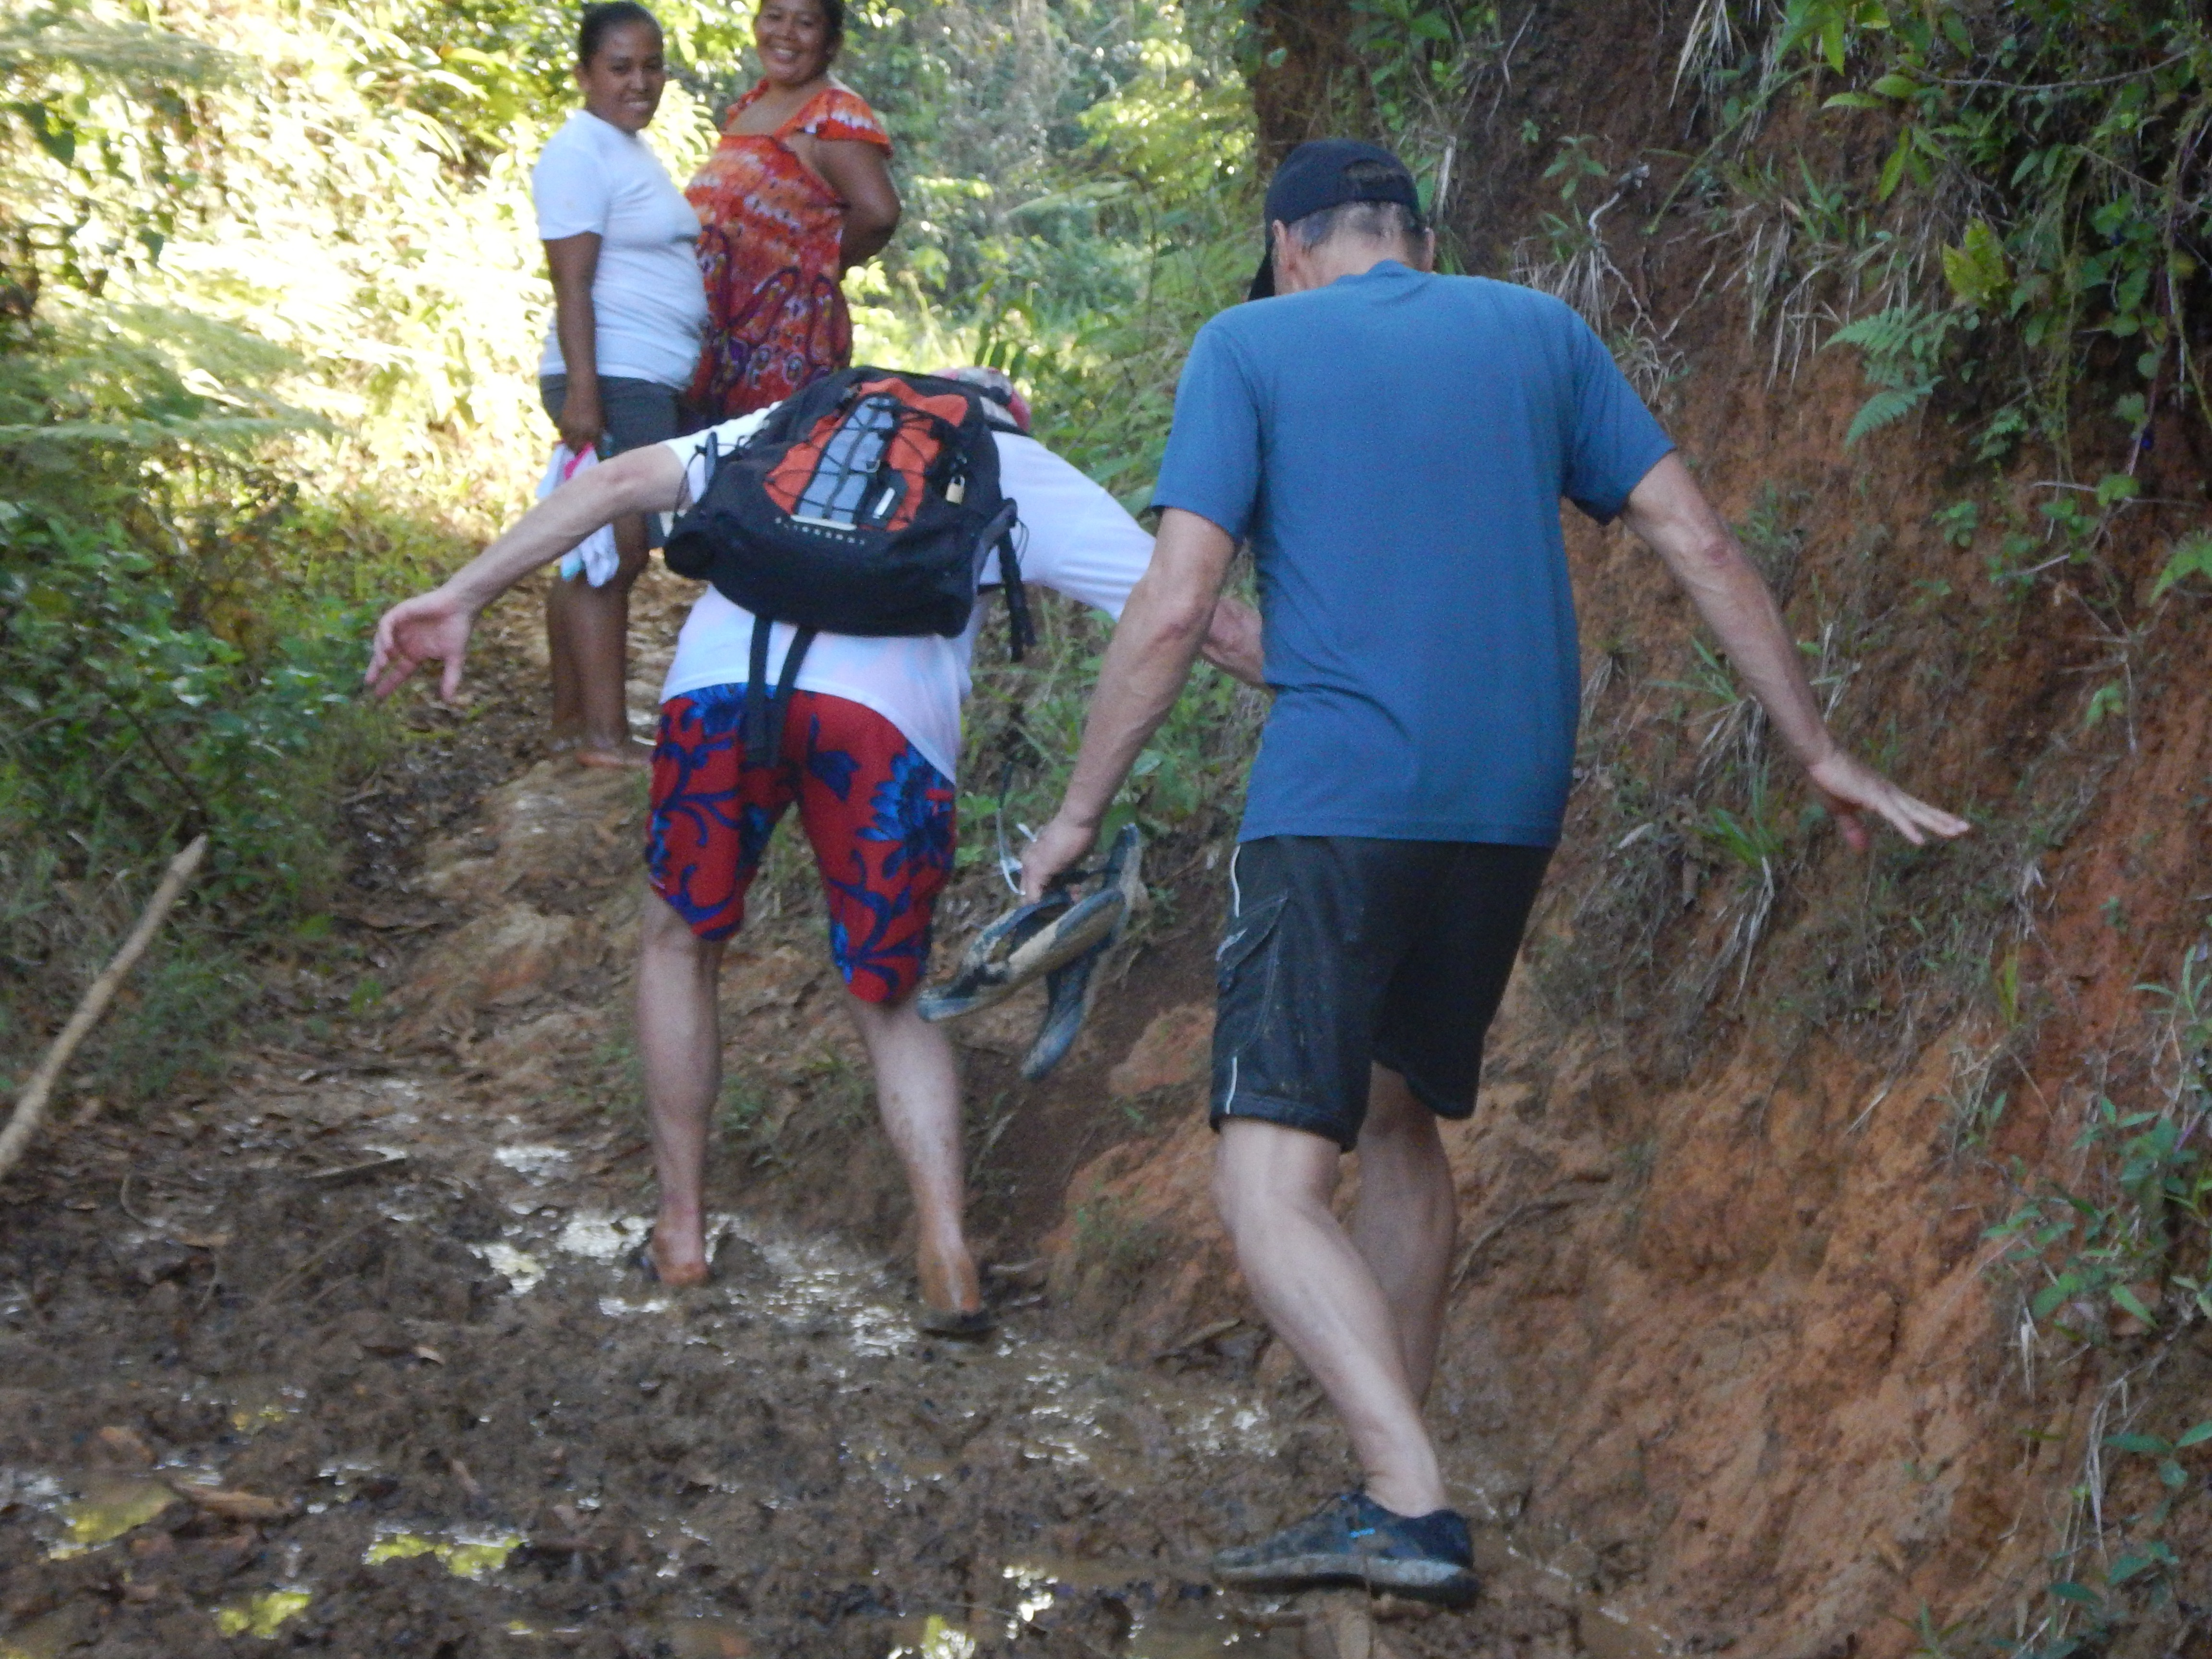 The barefoot locals had a good laugh over gringoes who got their fancy shoes stuck in the mud.